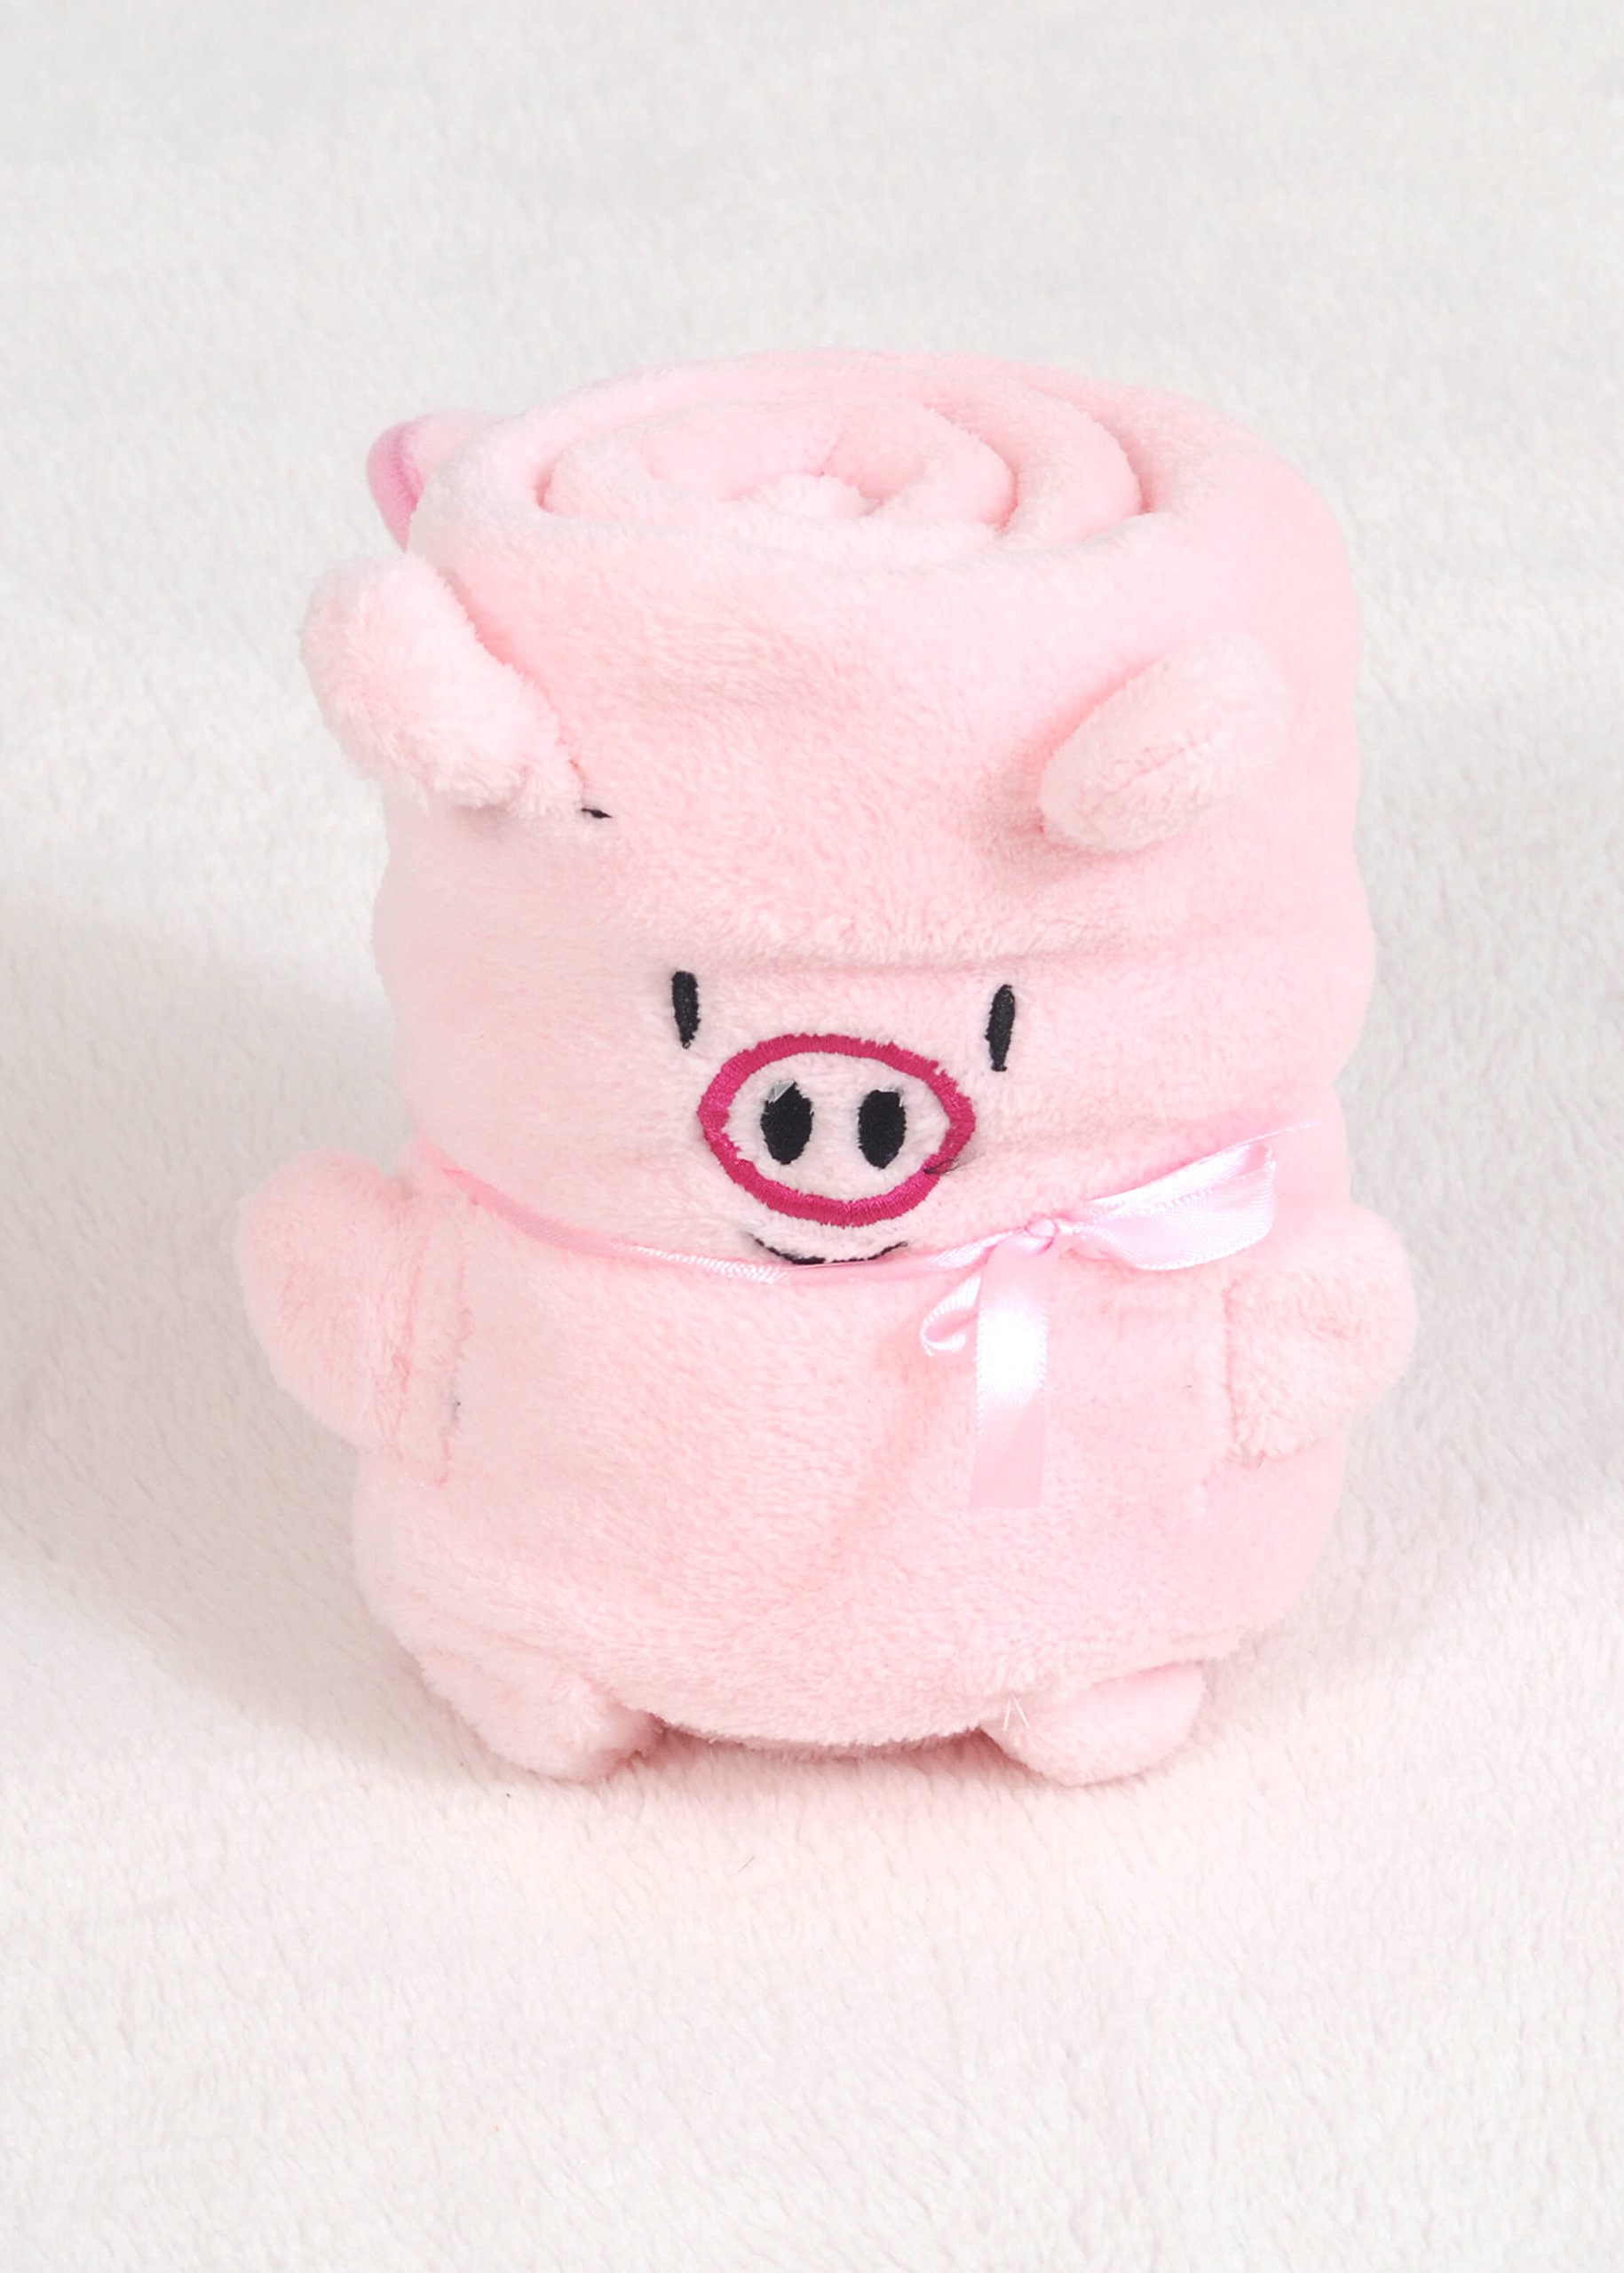 Plush Fleece Animal Pillow Blanket- Plush Travel Pillow Blanket for Baby or Small Child, Super Soft, Plushy Security Blanket, Snuggle, Transform - 32'' x 40'' (Pink Pig, Small)